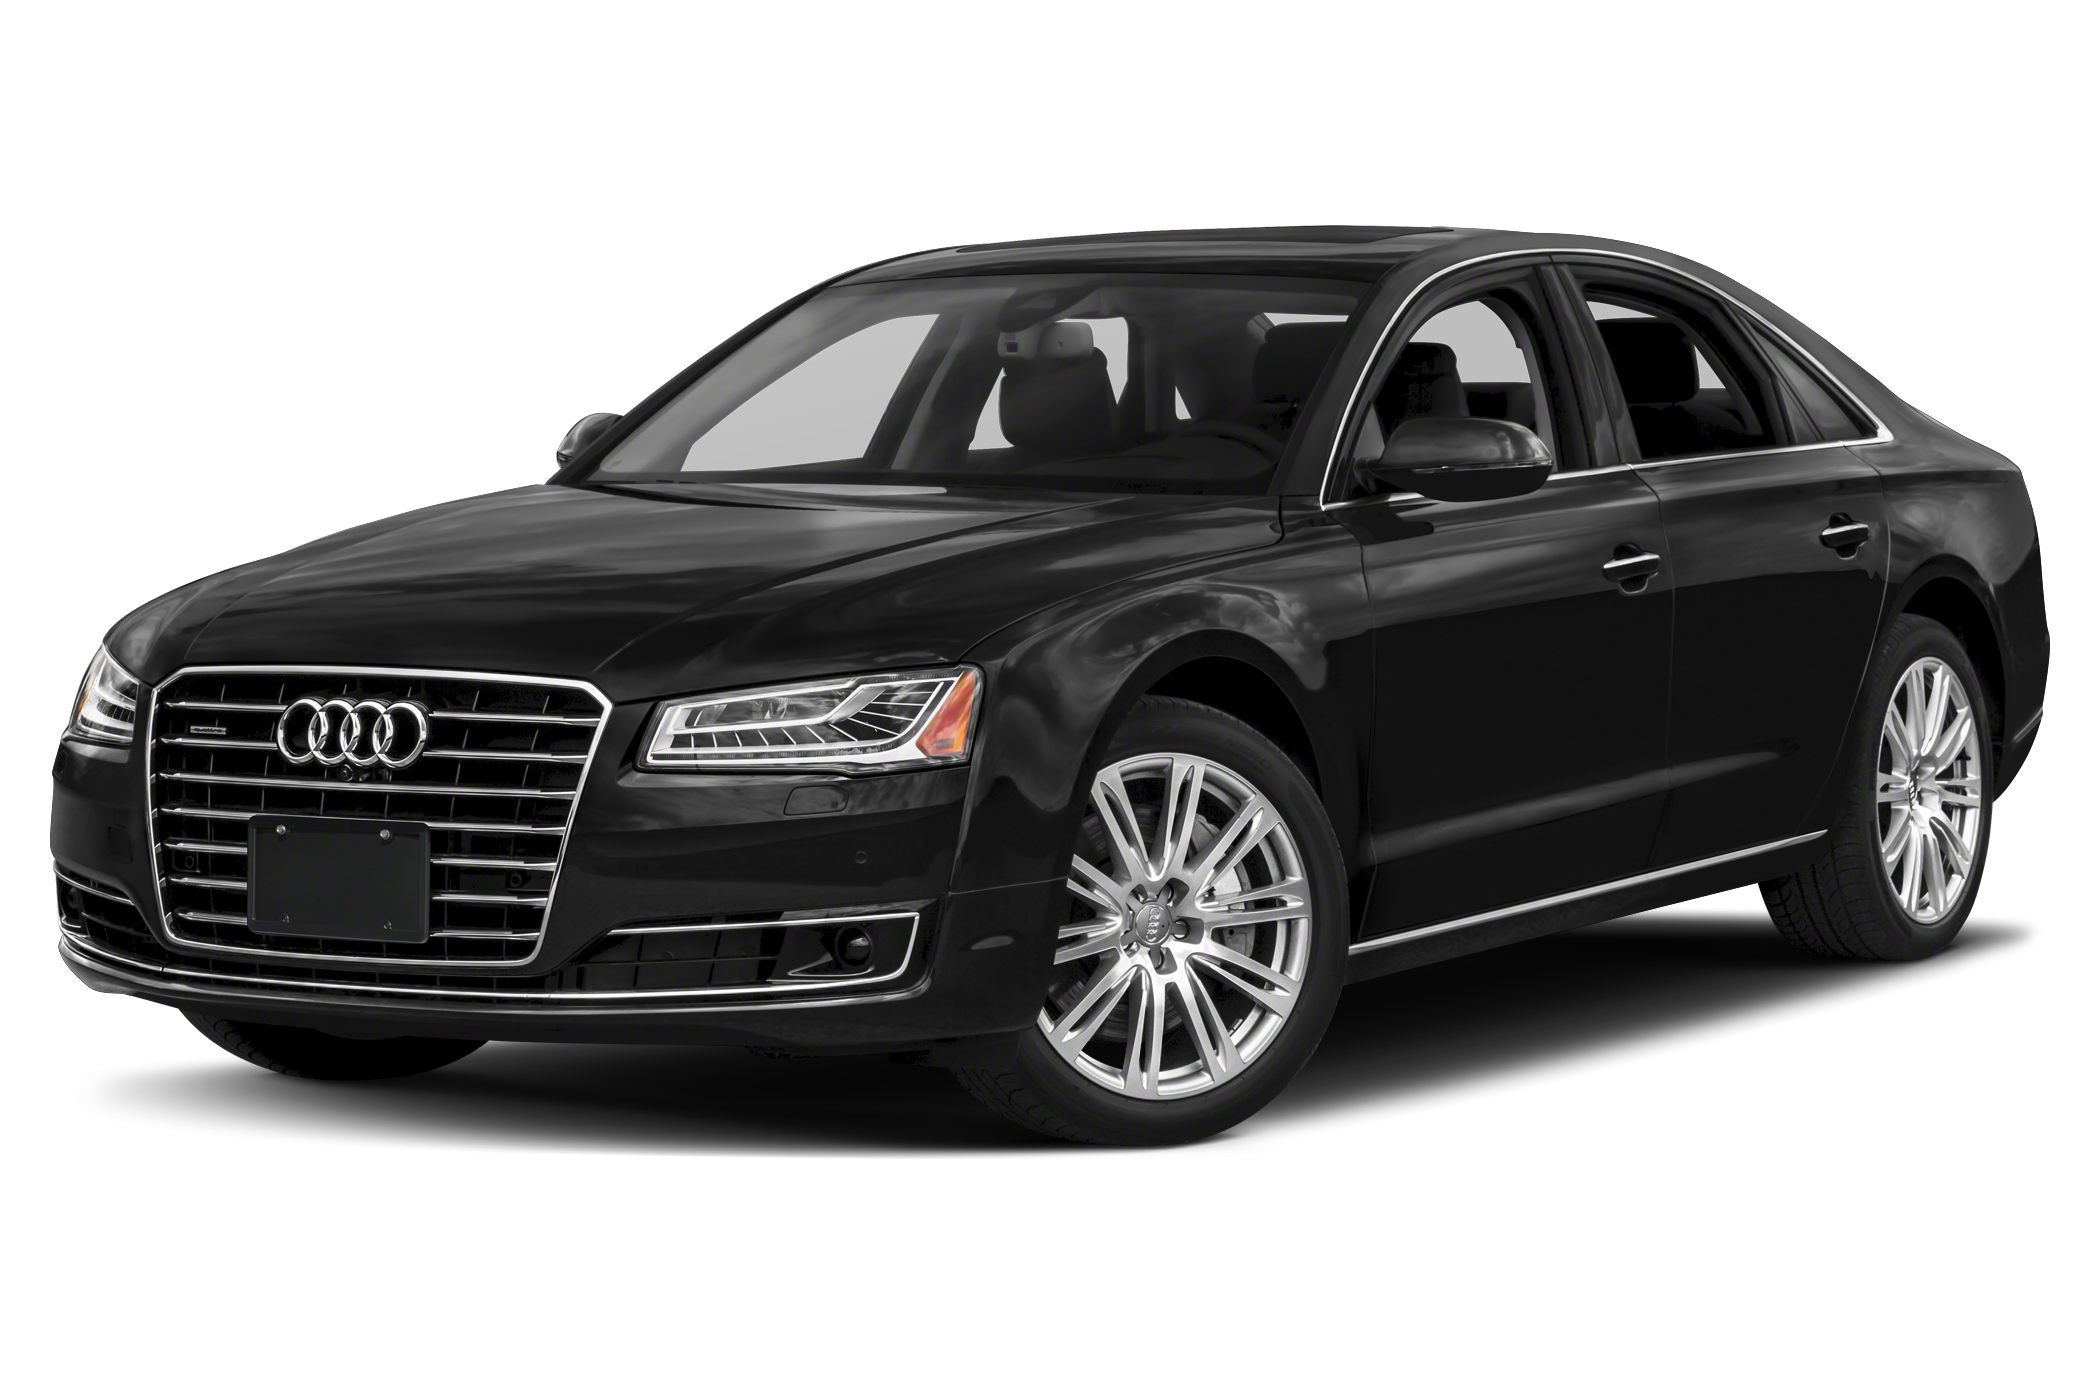 2015 Audi A8 3.0T Sedan for sale in Parsippany for $86,800 with 0 miles